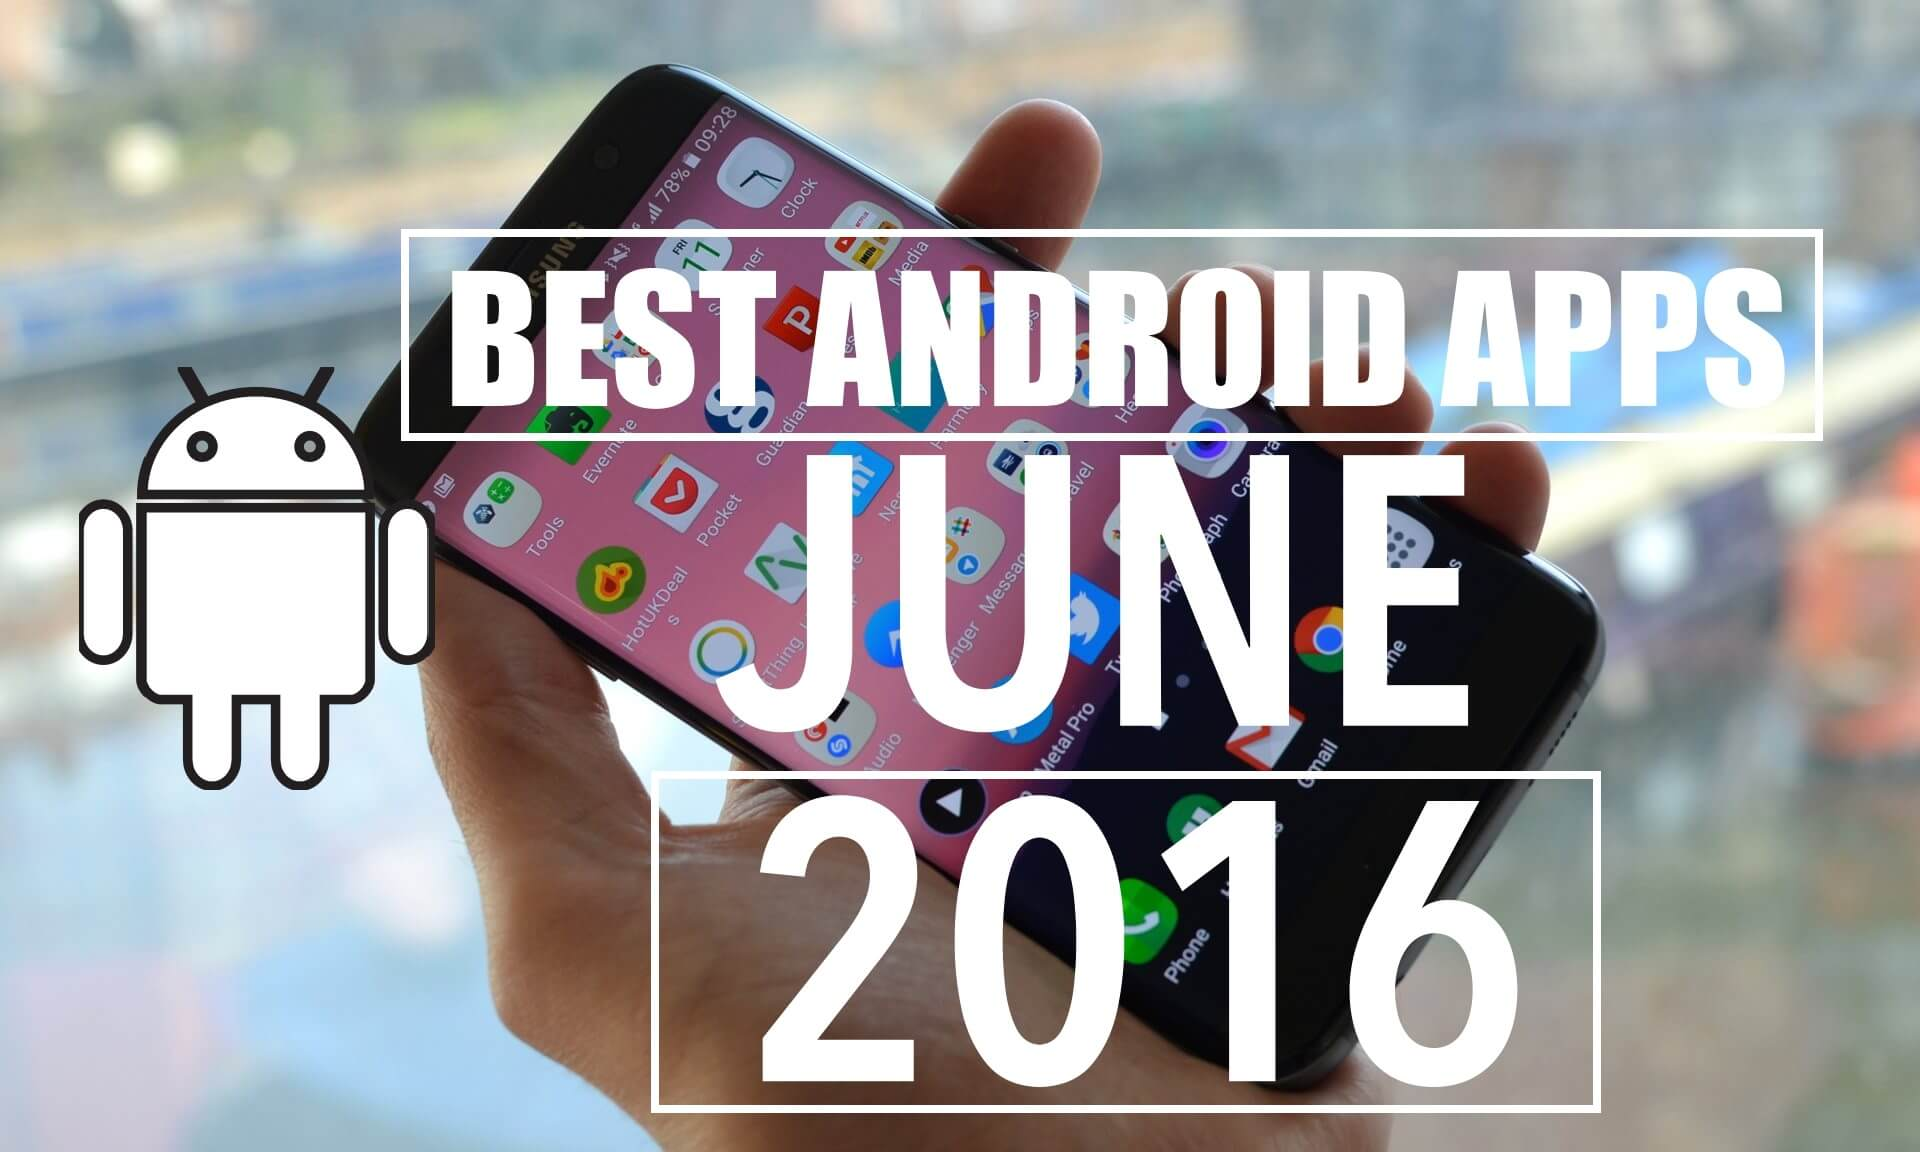 10 best new Android apps of June 2016